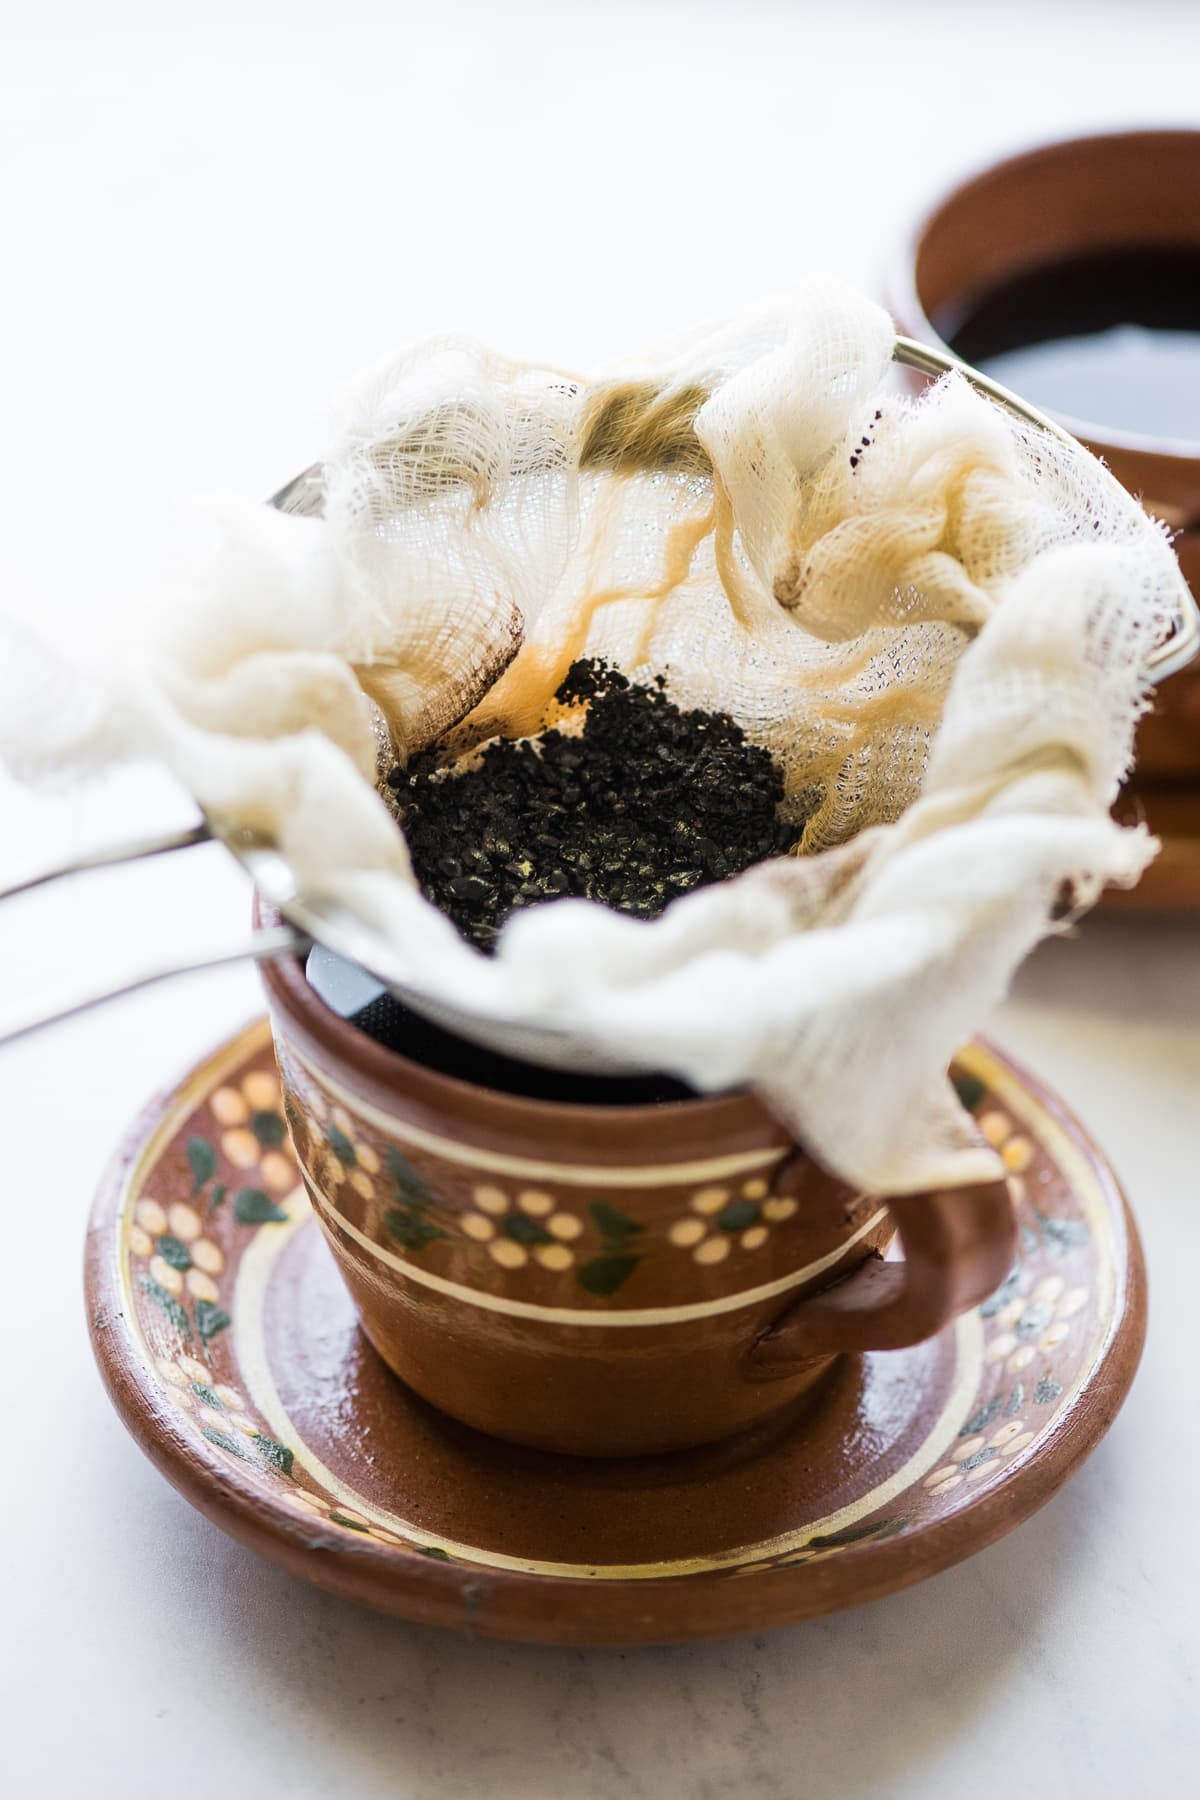 Coffee grounds being sifted from the cafe de olla.